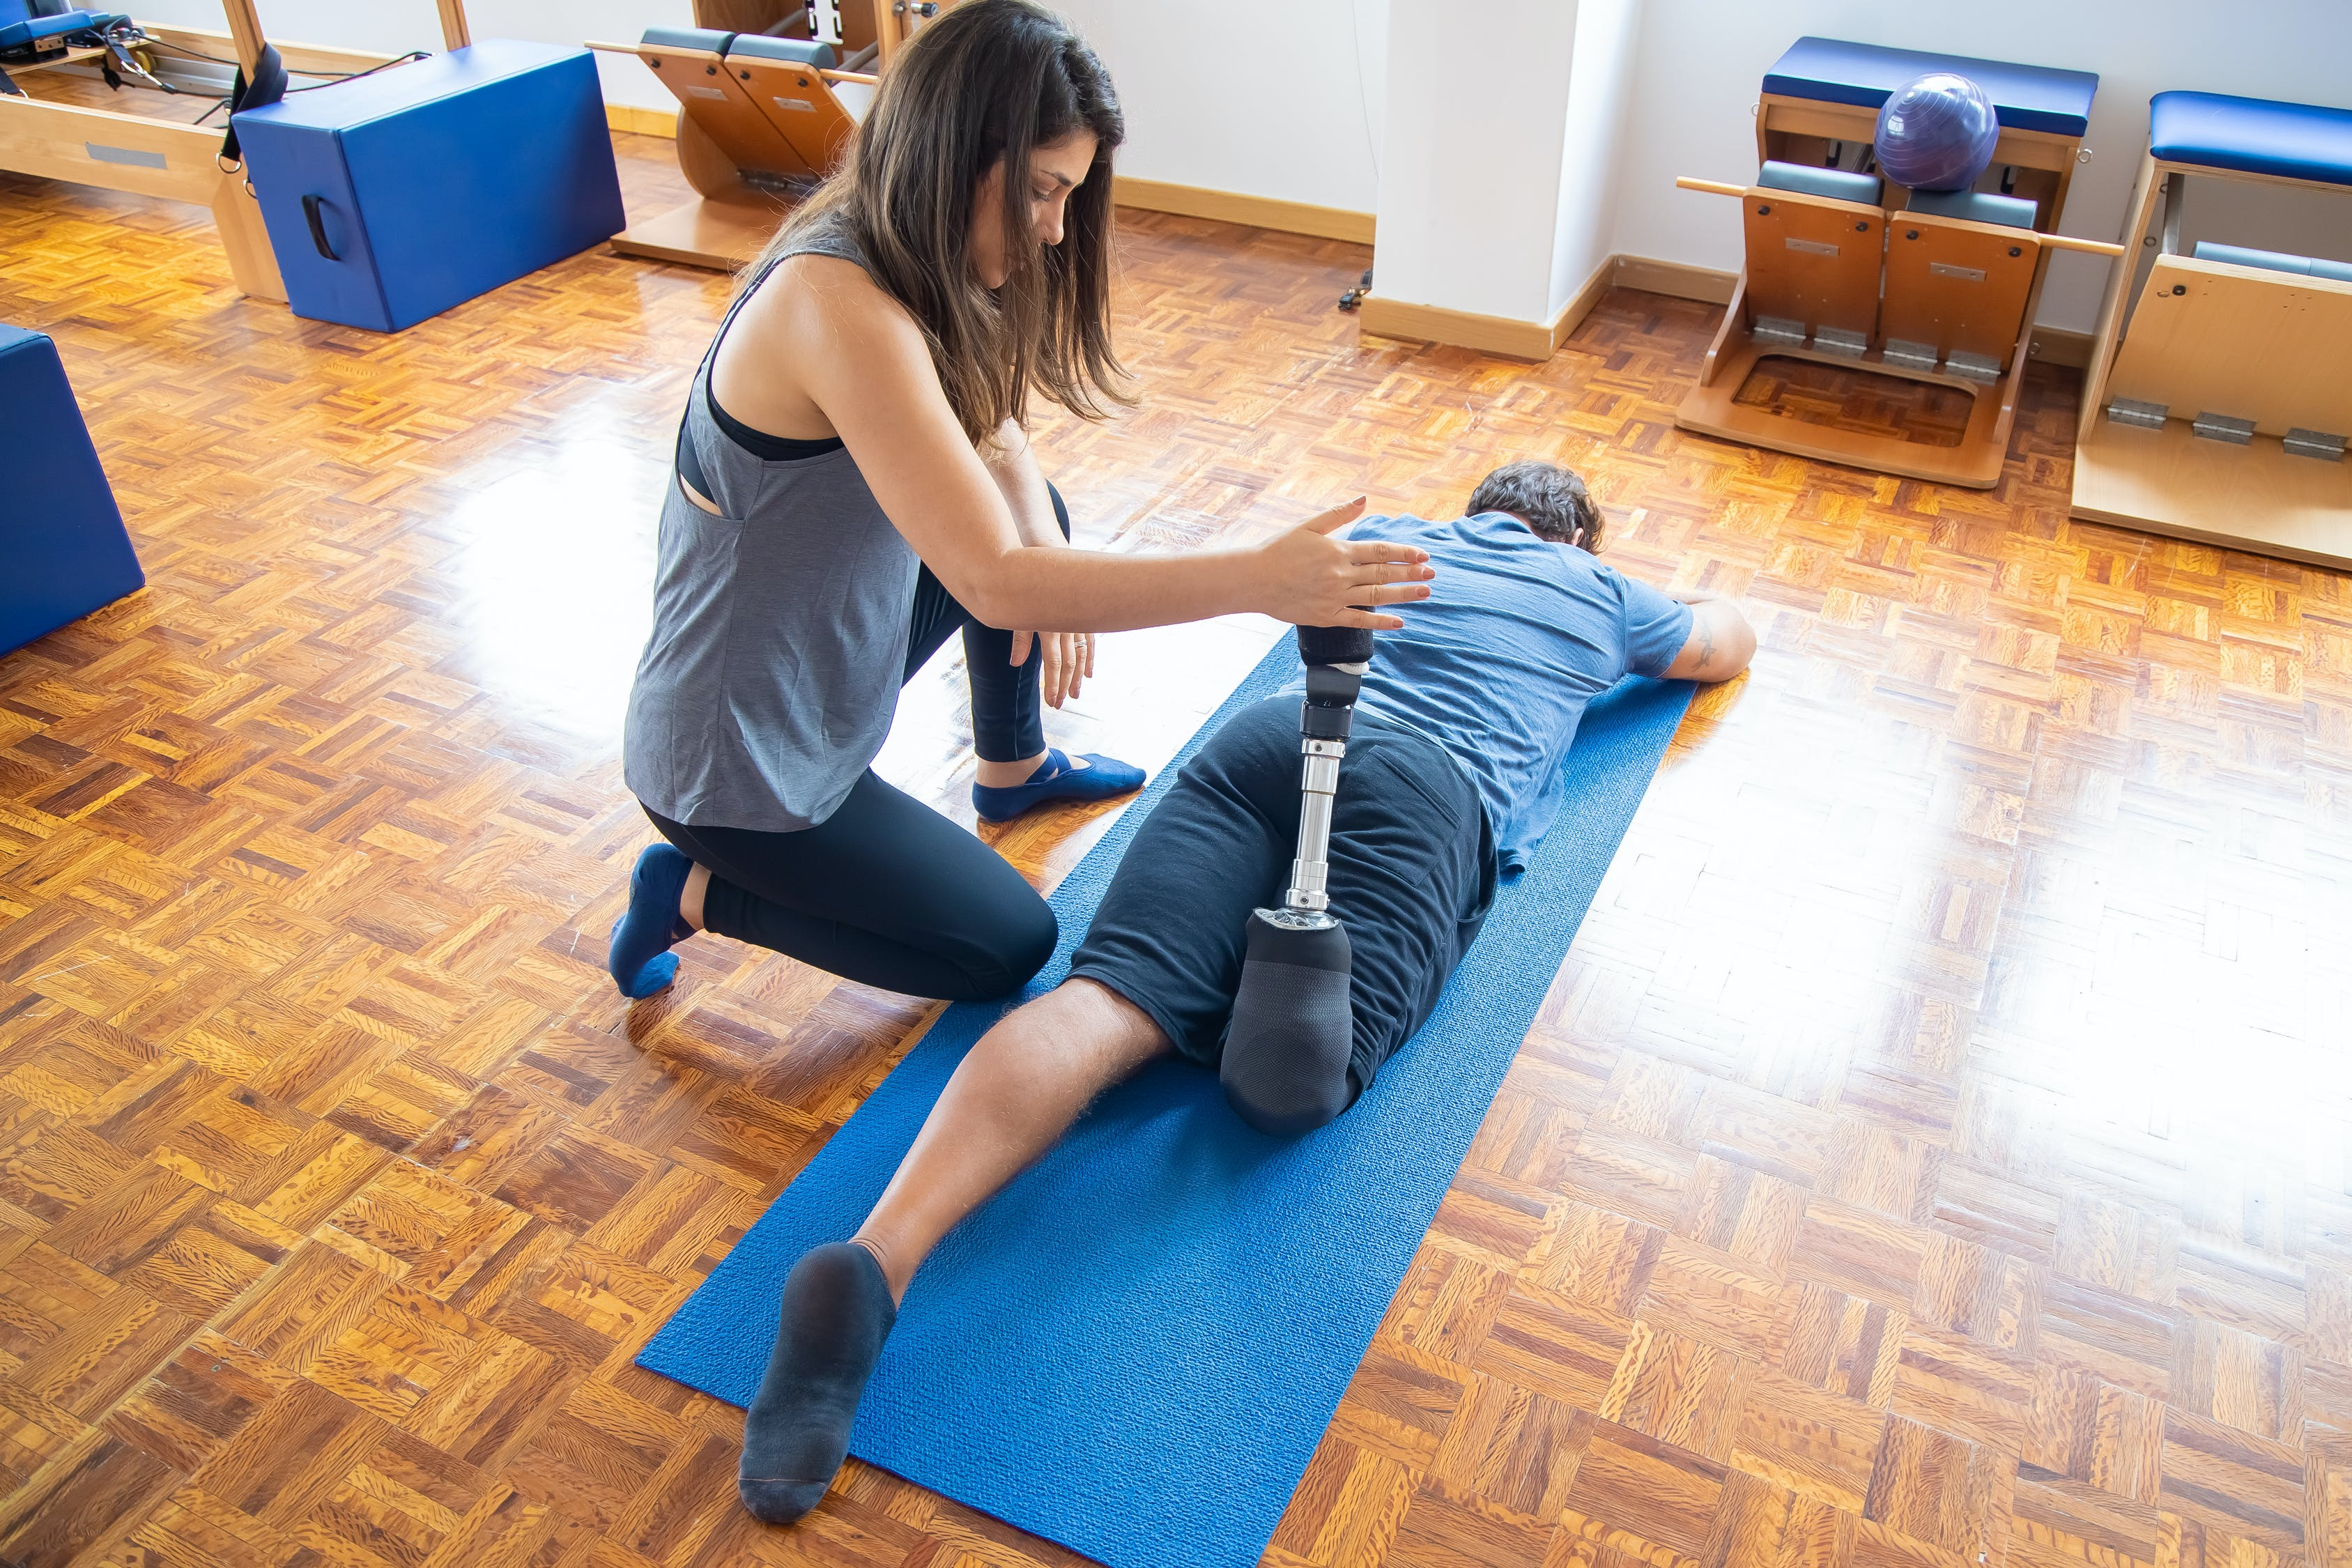 Woman in White Tank Top and Blue Denim Jeans Sitting on Blue Yoga Mat